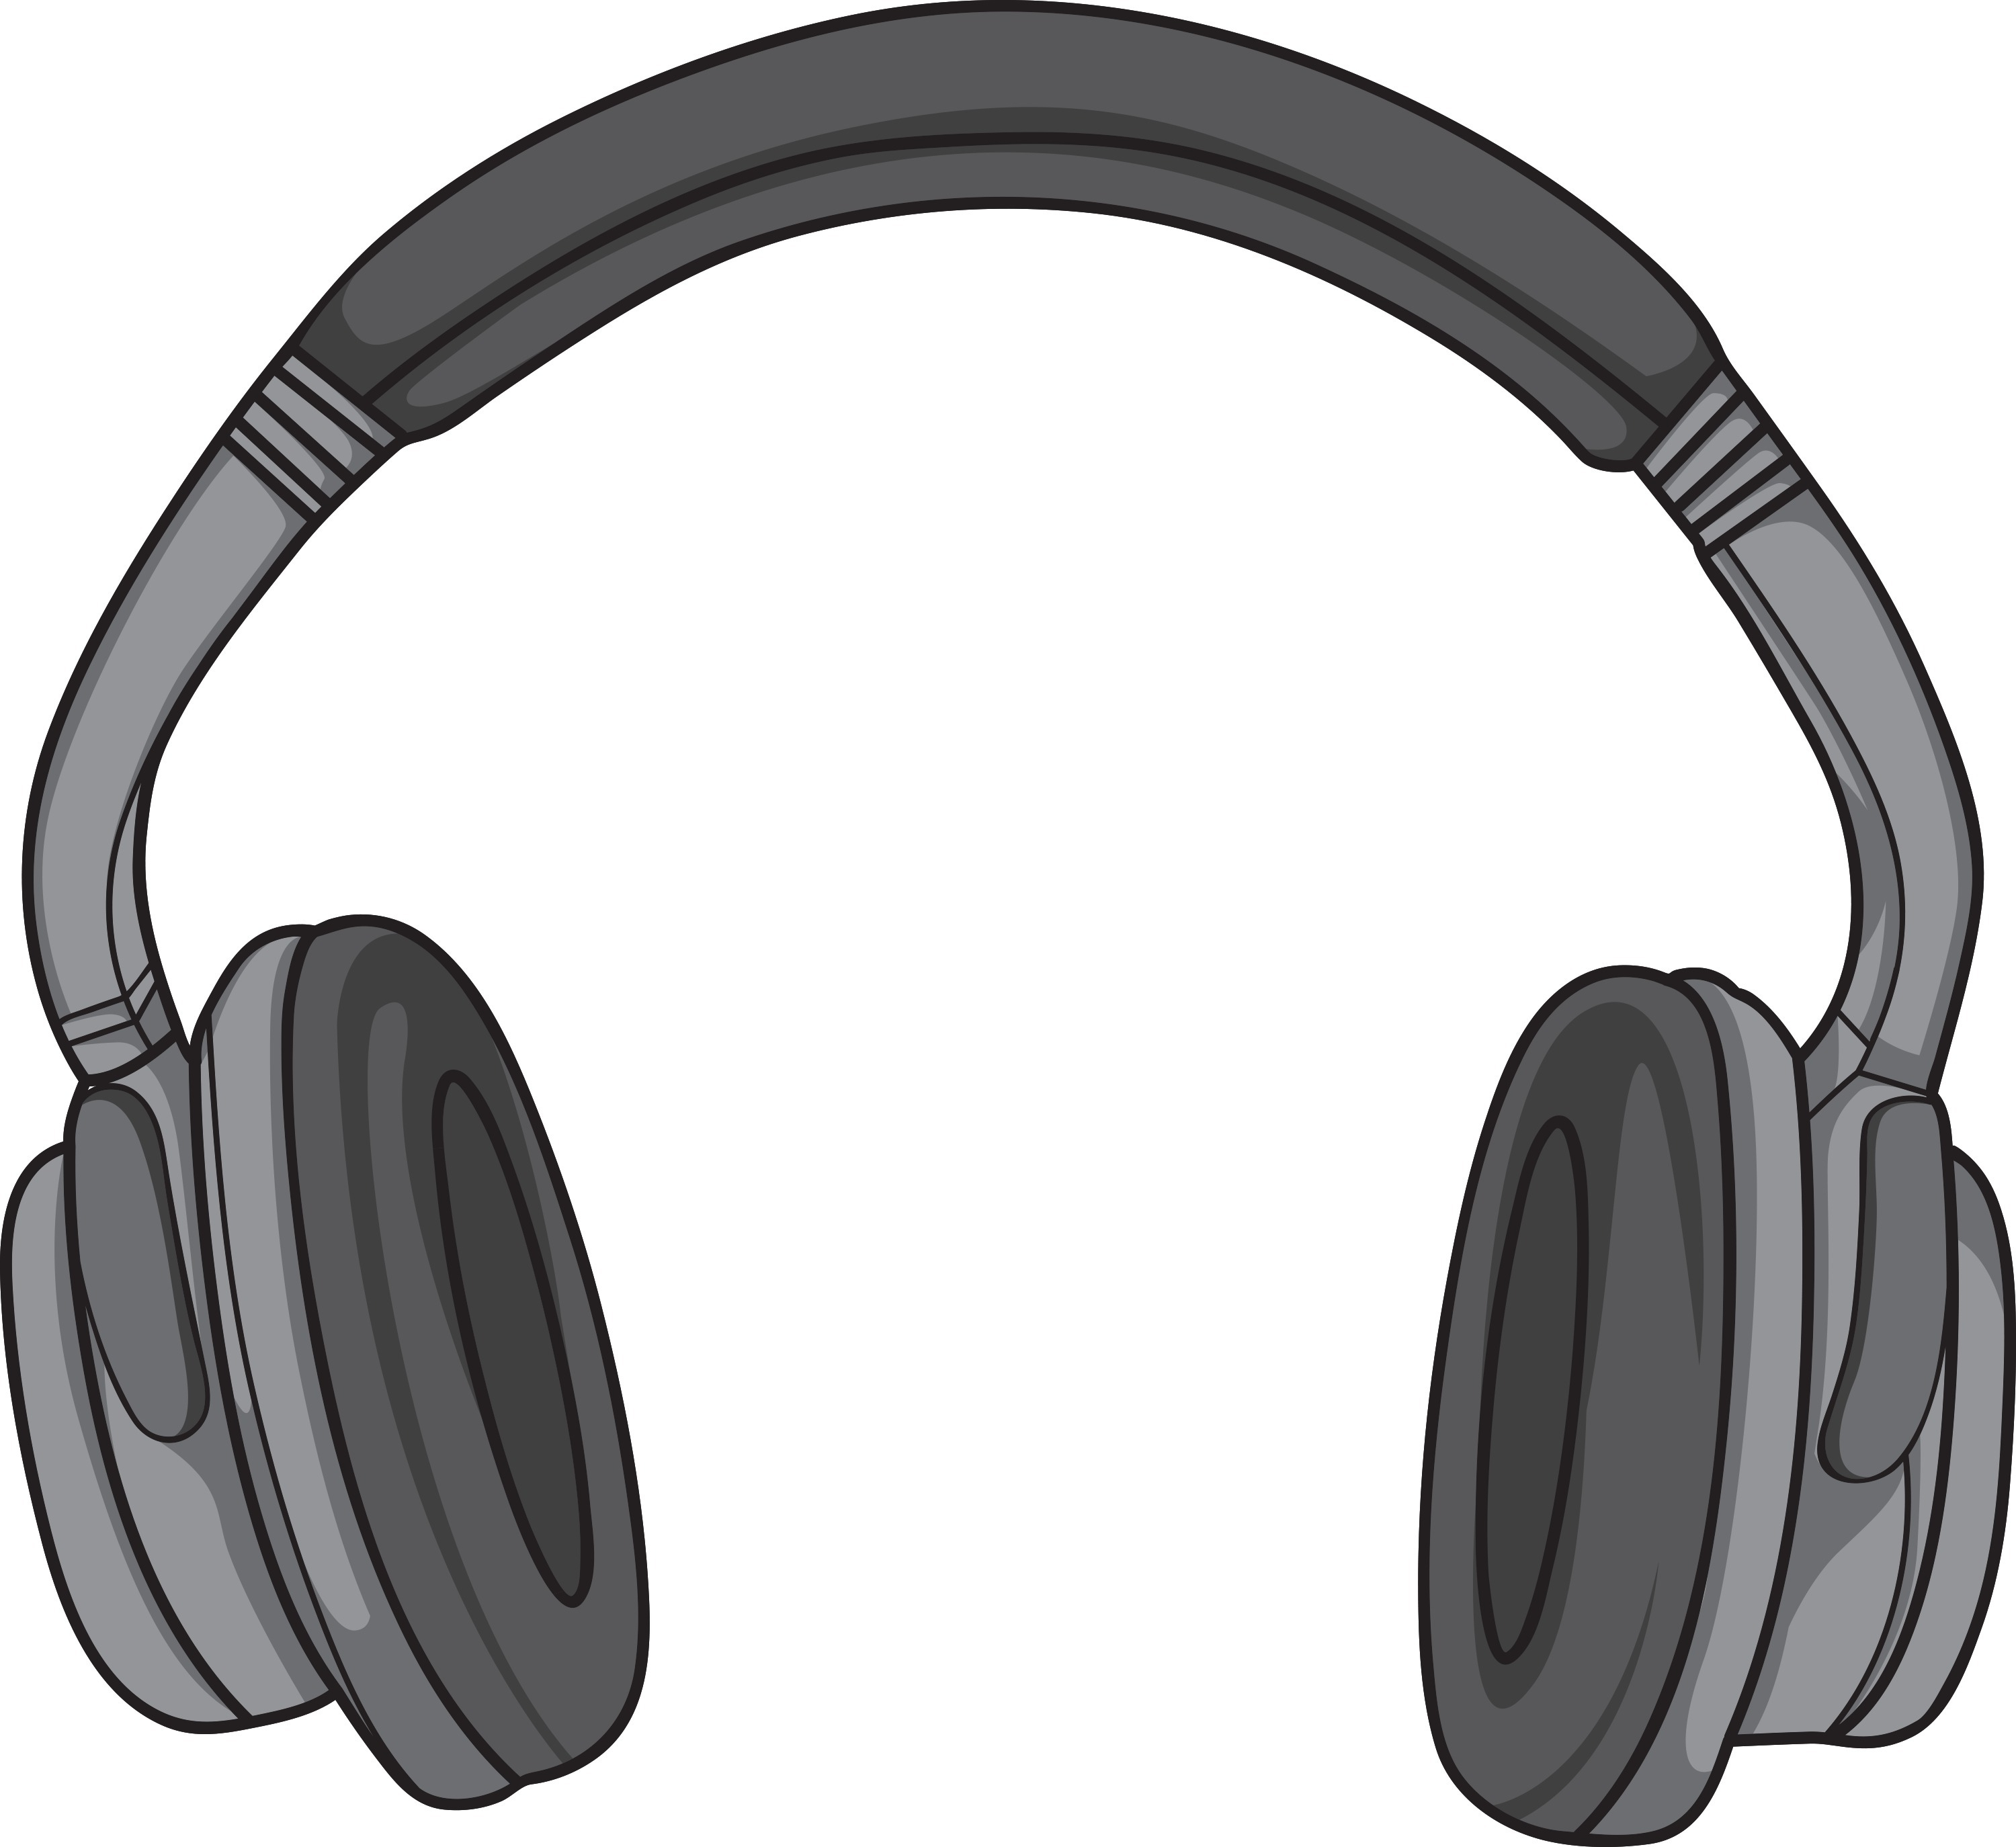 An illustrated pair of headphones.